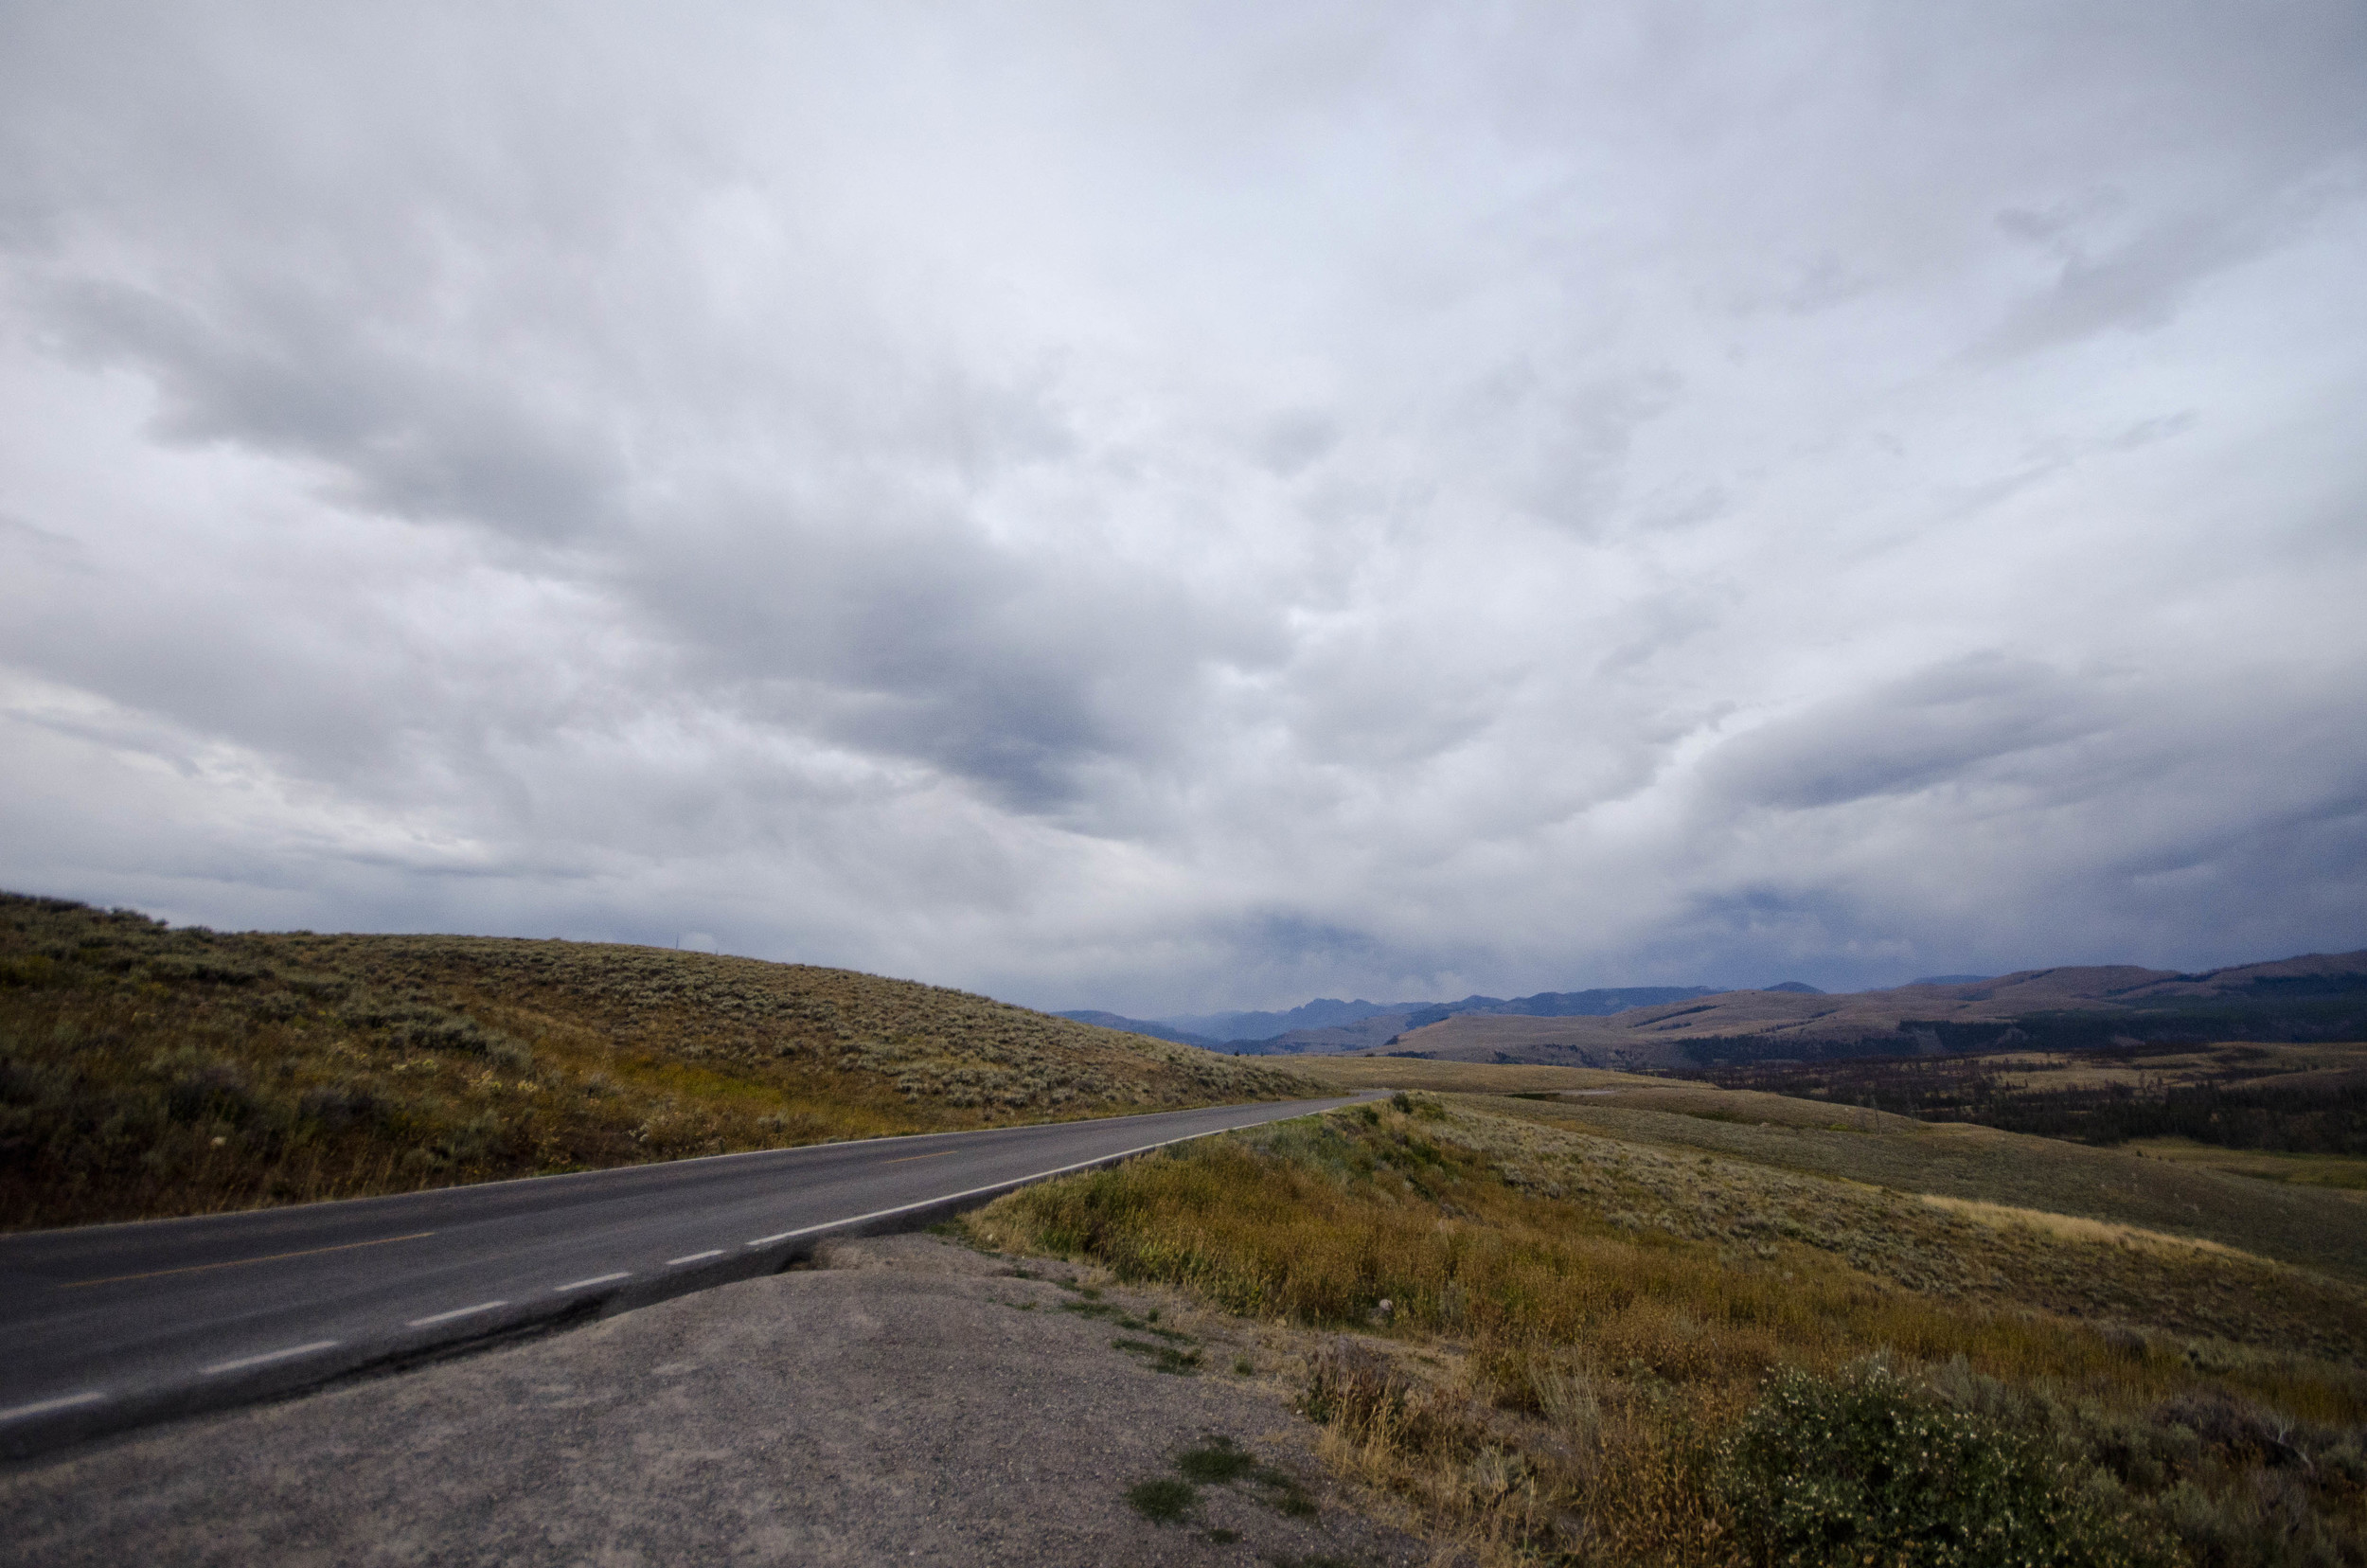 Day 43: 389 miles, 2 states and a whole lotta pretty